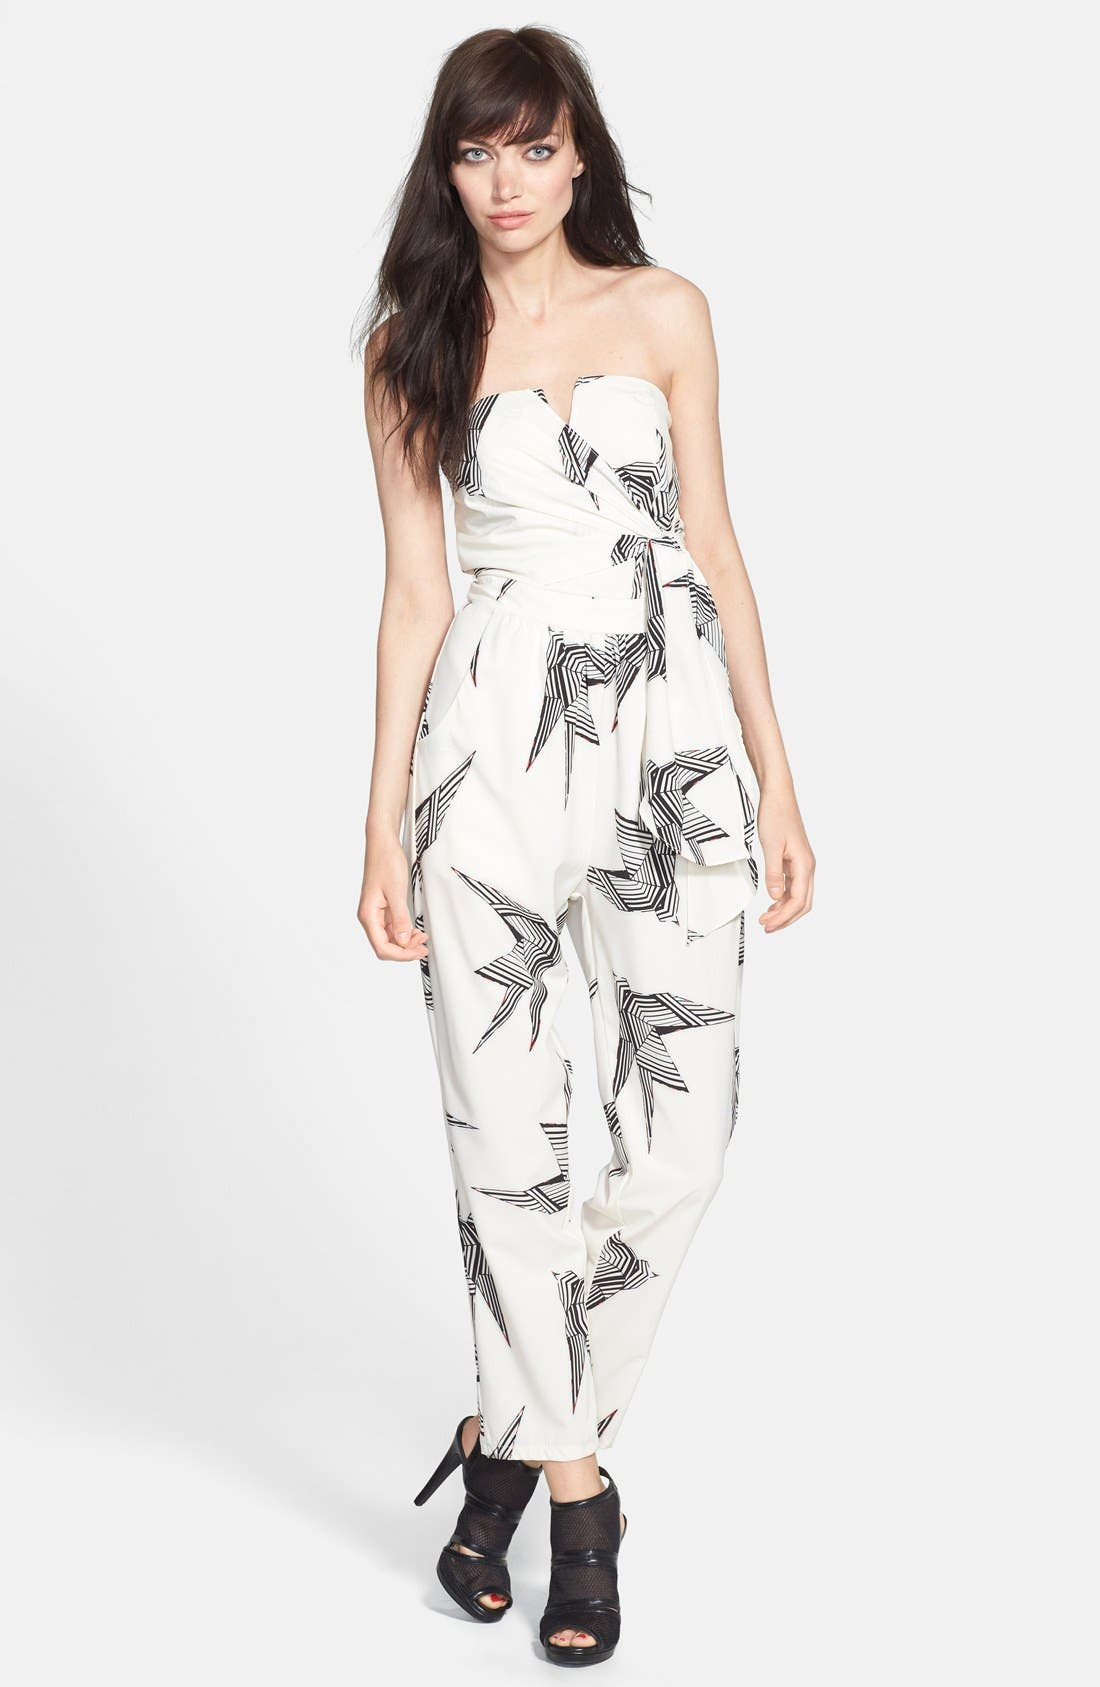 Alternate Image 1 Selected - Rules of Etiquette Print Tie Front Romper